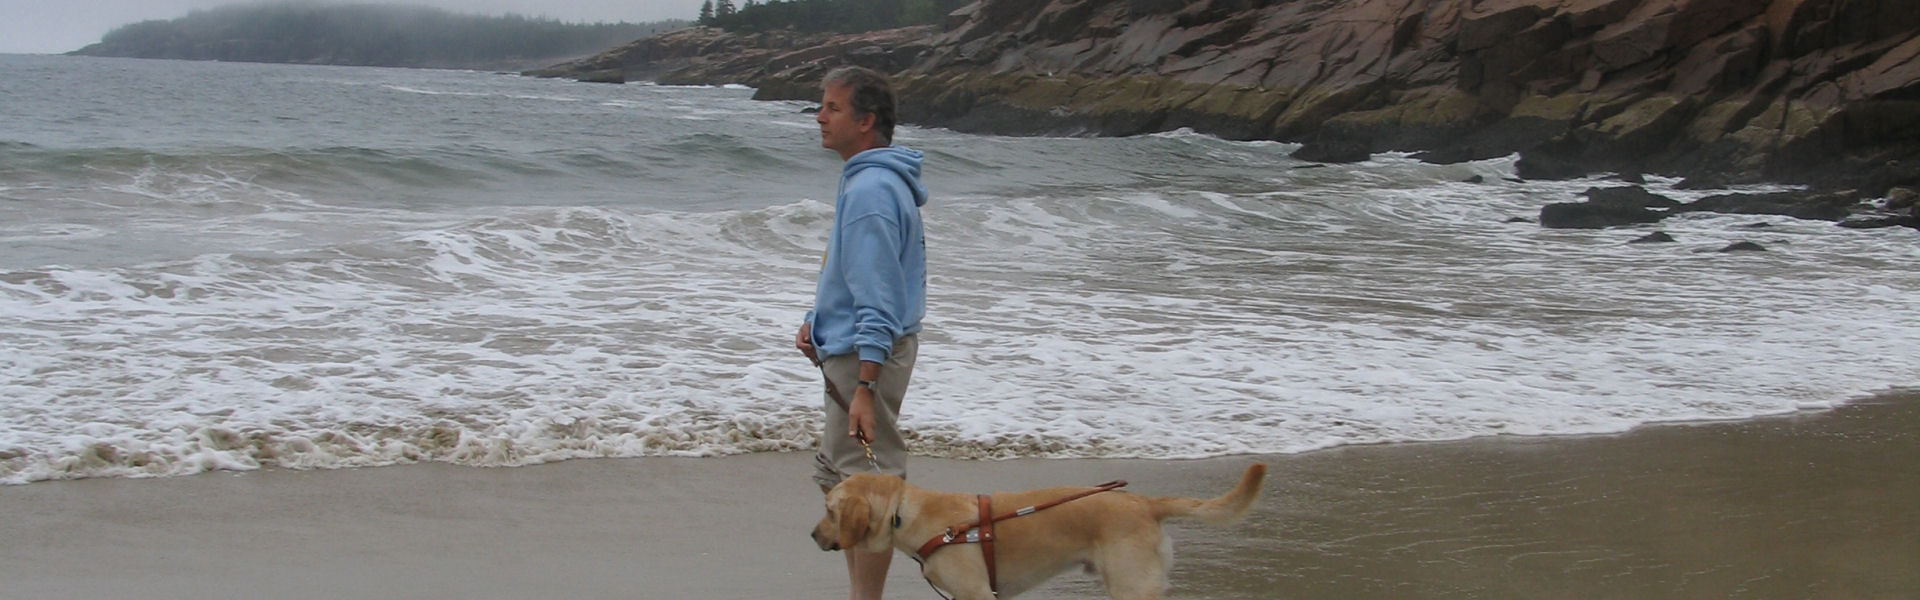 Mike and Seeing Eye dog, Miguel, at a Maine beach